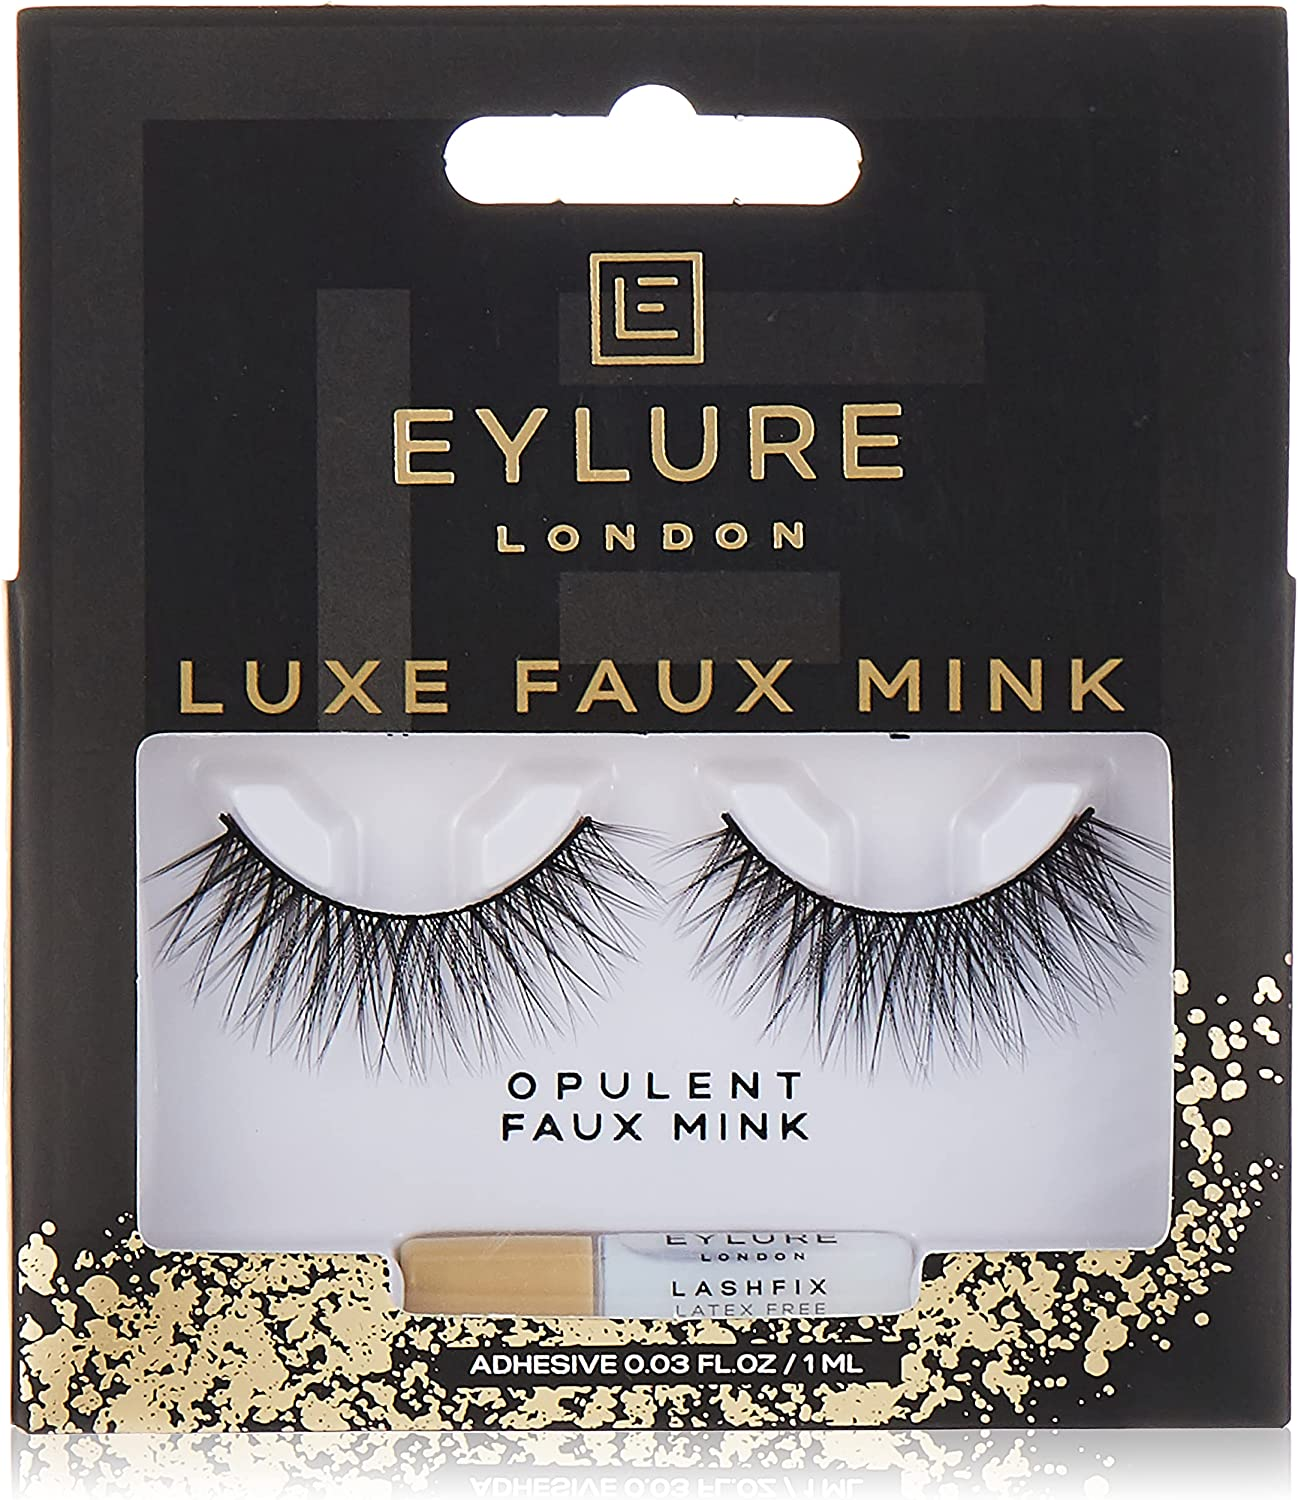 Selling and selling Eylure Mail order Faux Mink Eye Lashes Reusable Included Adhesive Baroqu